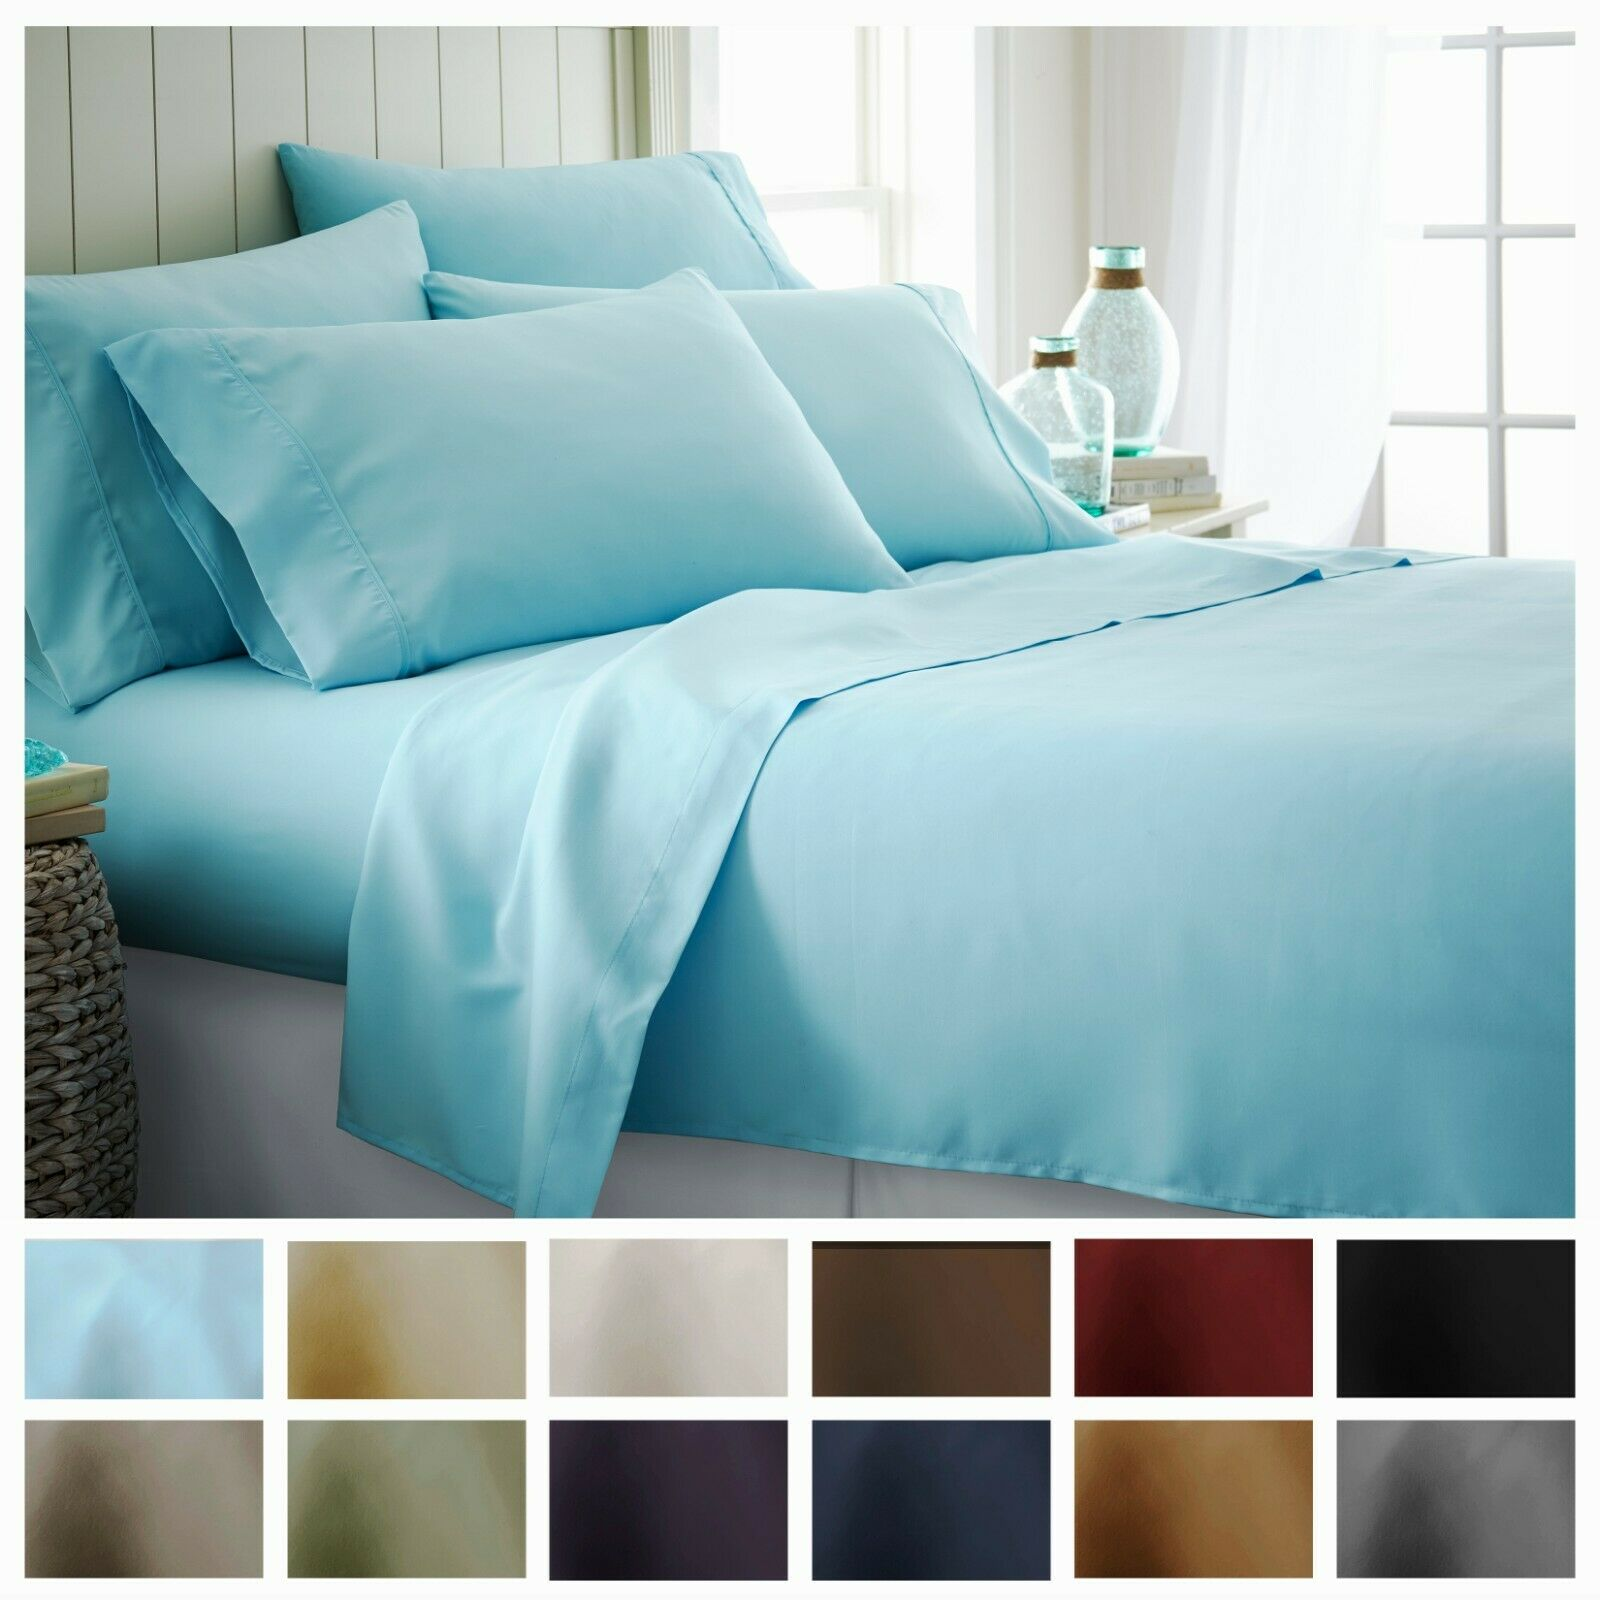 Macy S Hotel Collection Queen Sheet Set For Sale Online Ebay